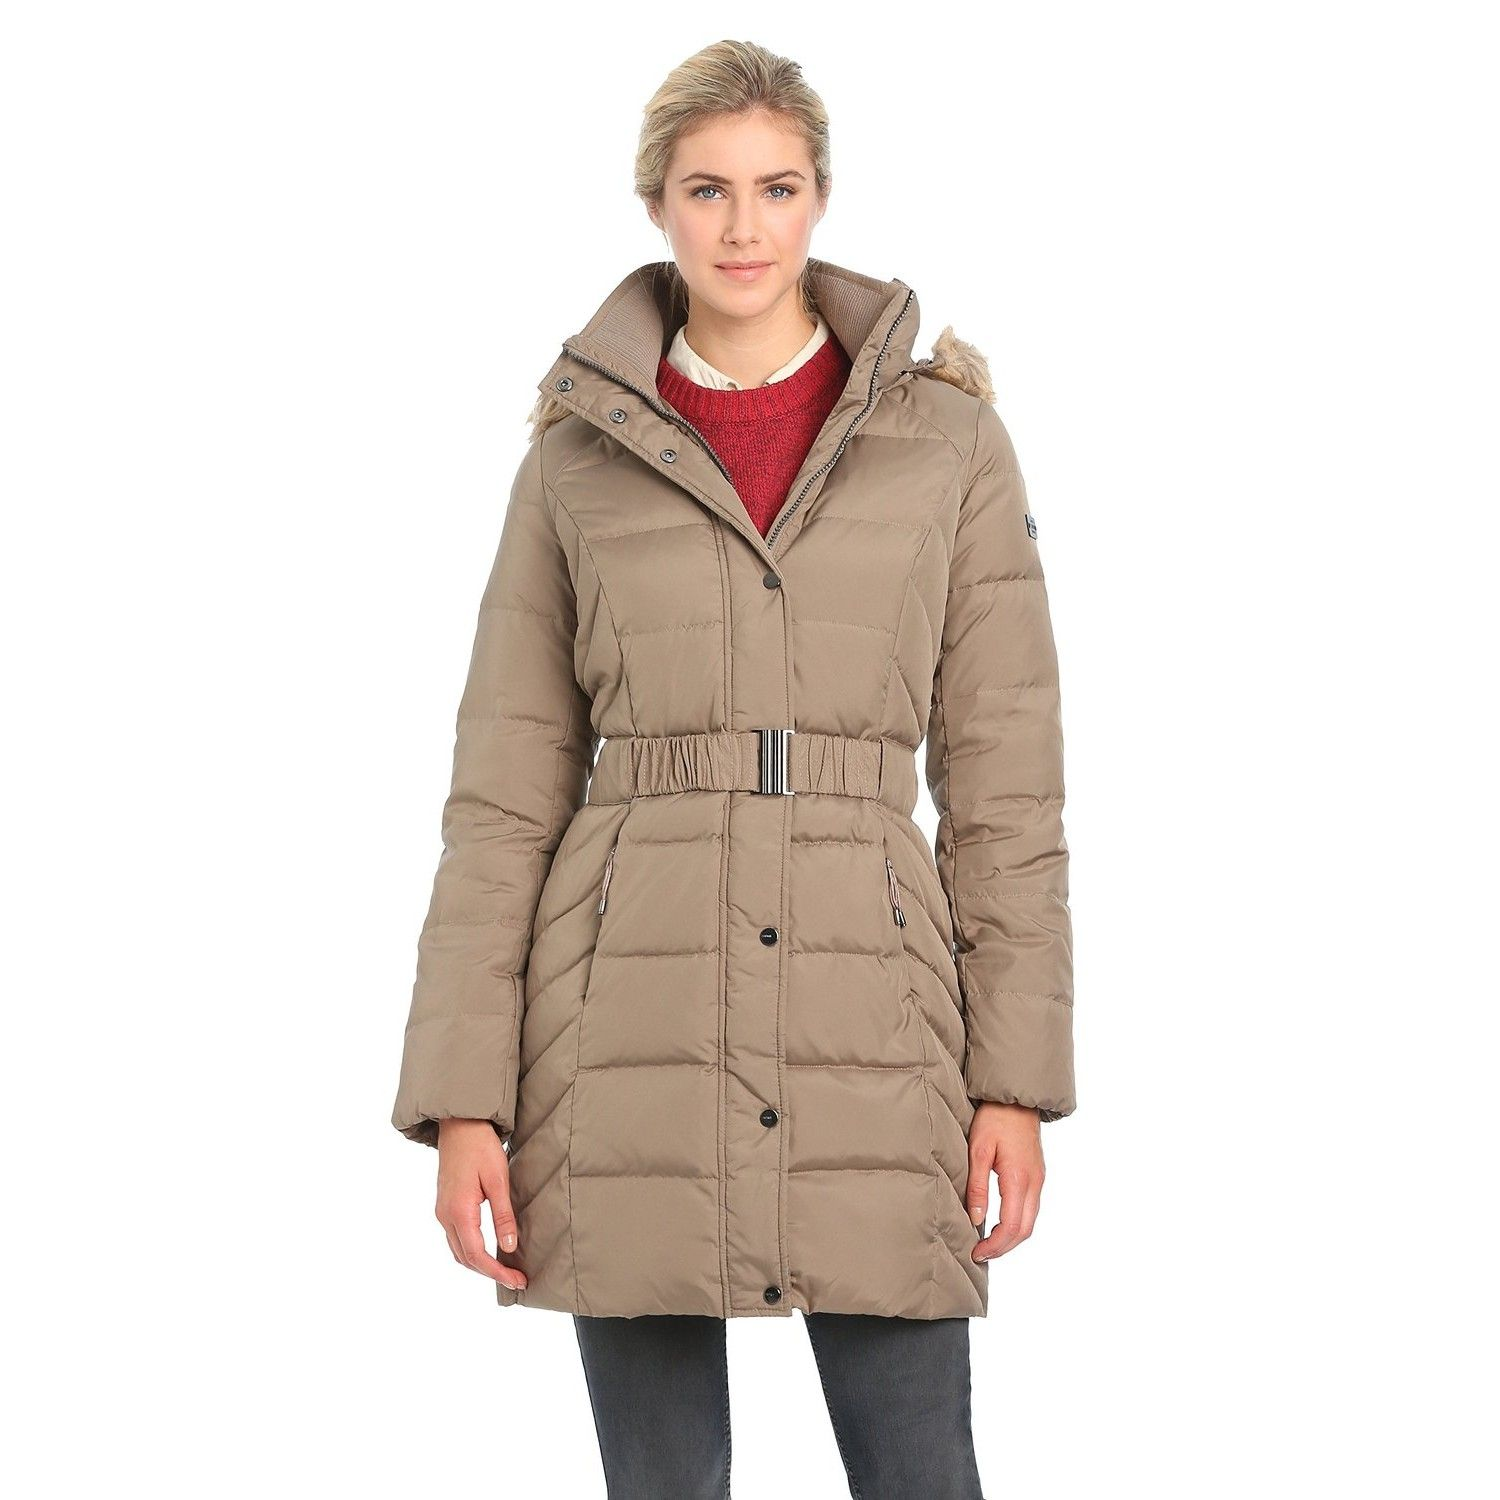 Save upto £62 on #Esprit Women's Down Puffa Coat #sale #discount